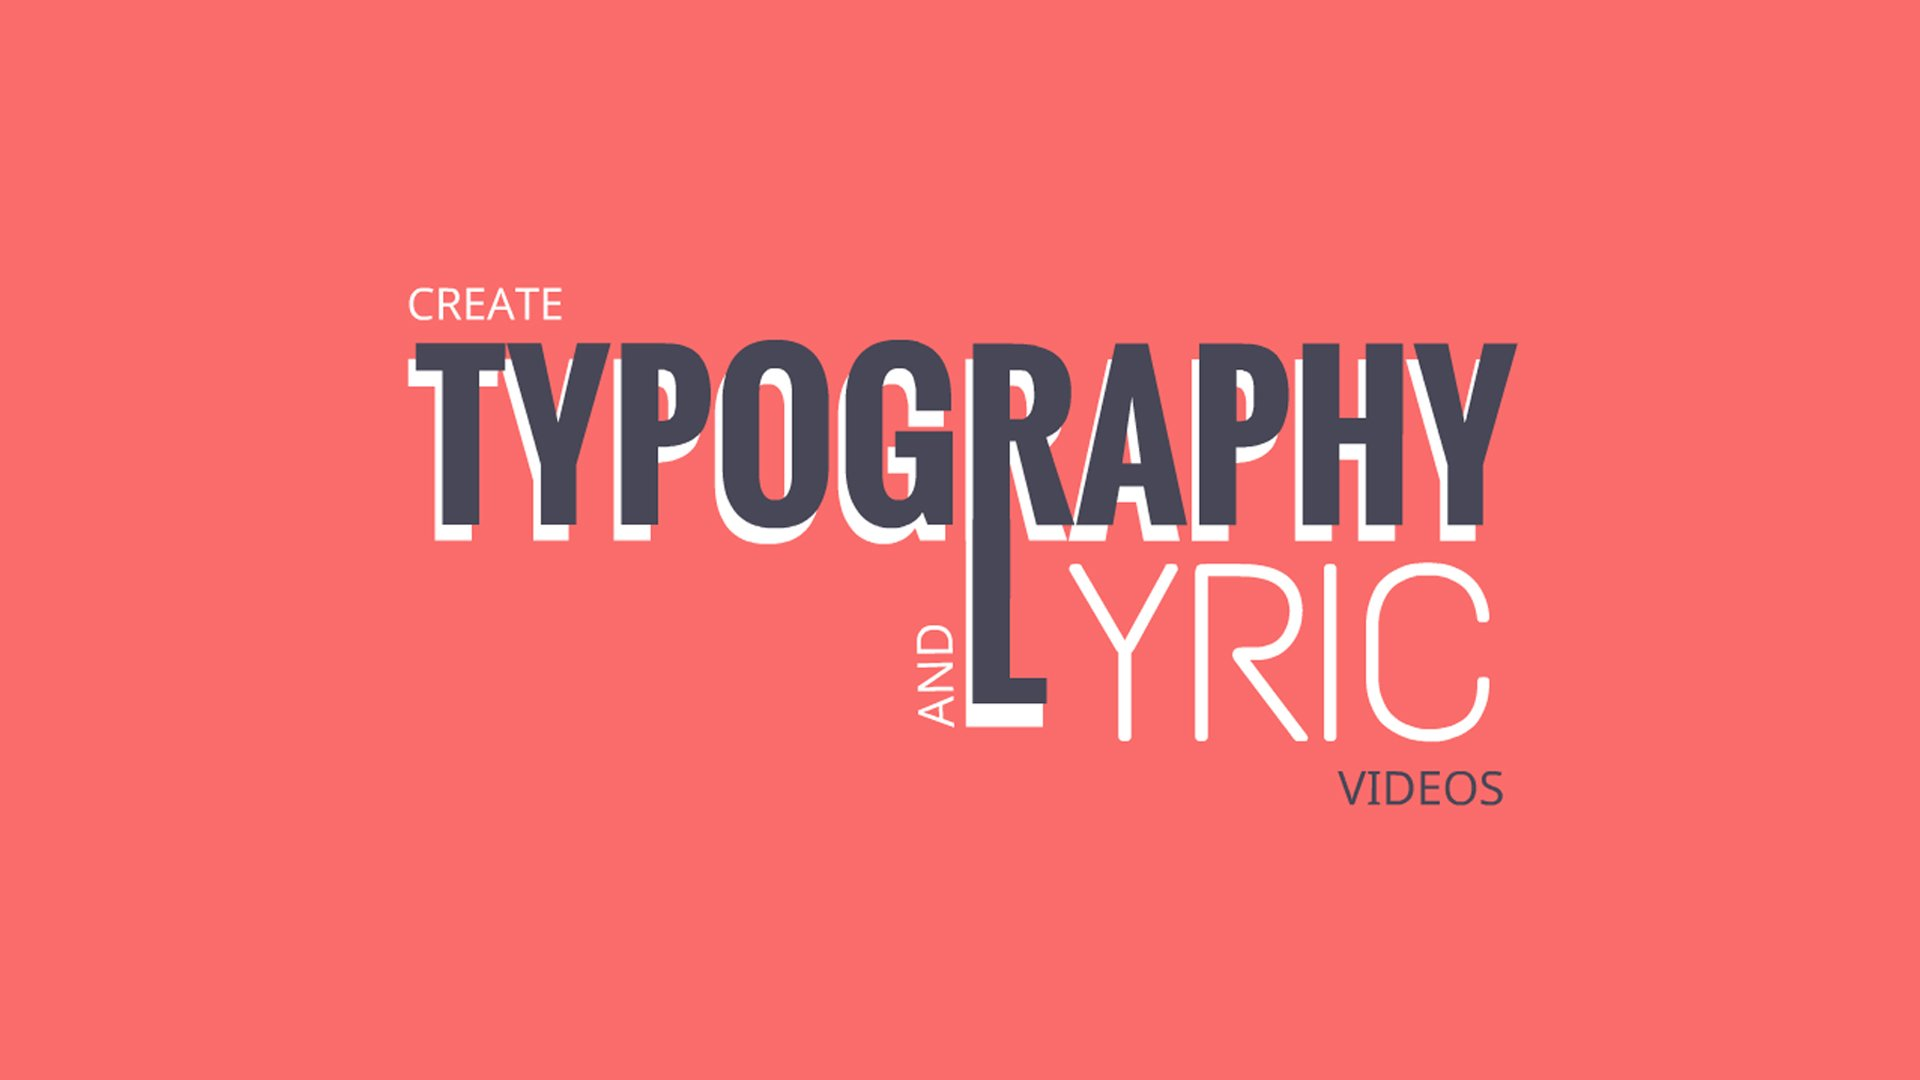 lyric video maker